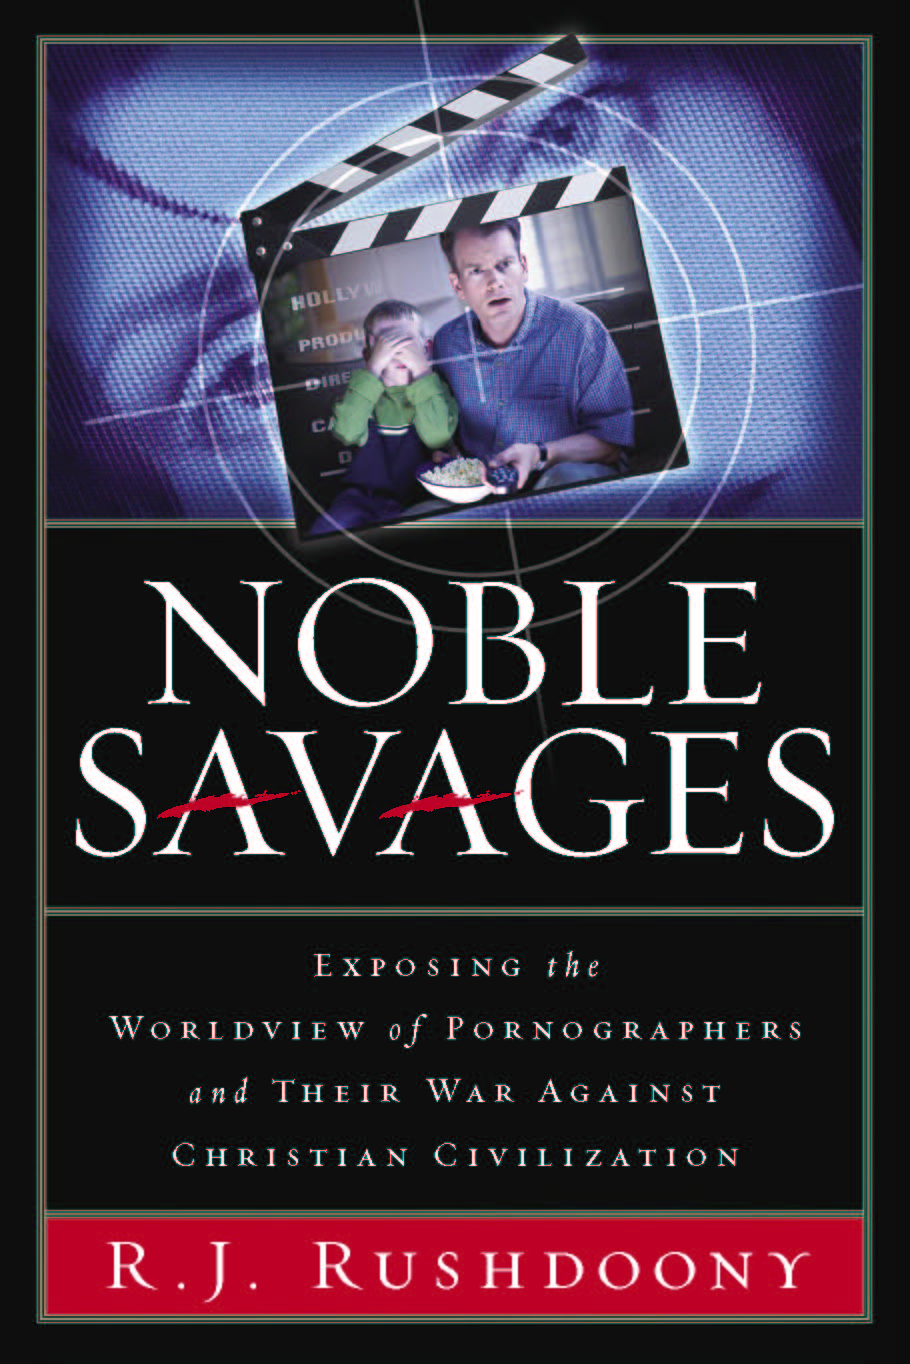 Noble Savages: Exposing the Worldview of Pornographers and Their War Against Christian Civilization